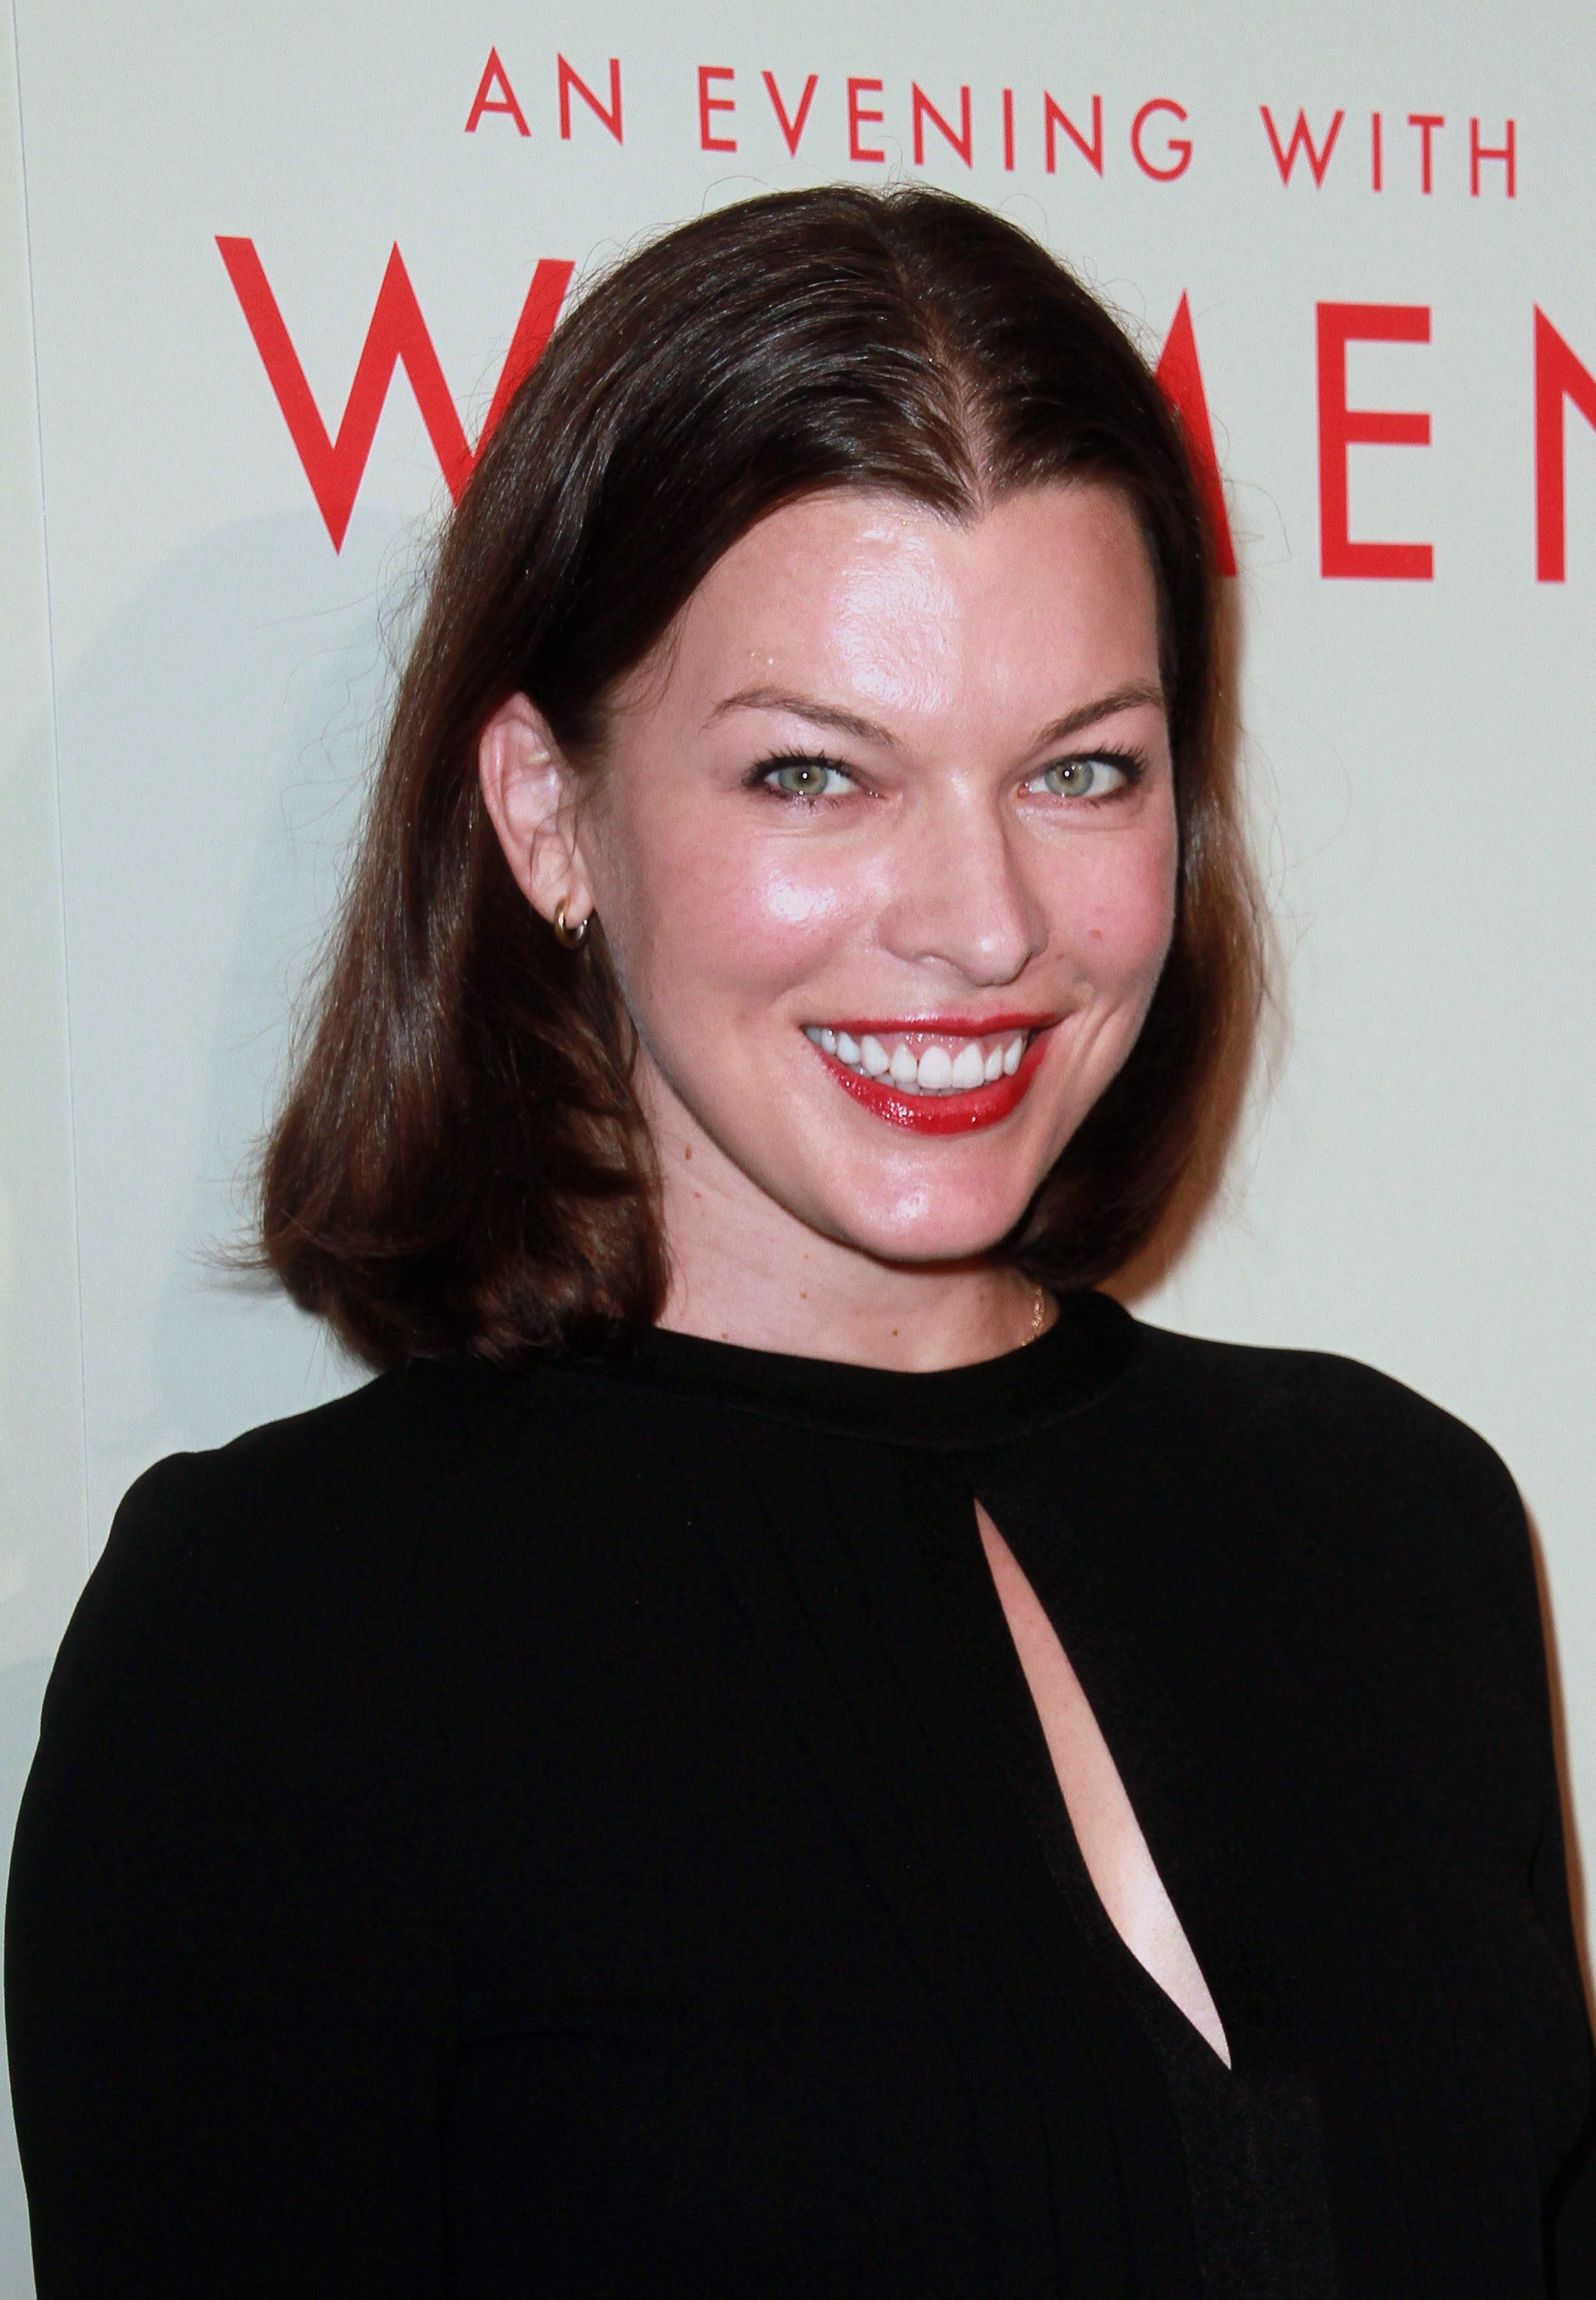 Milla Jovovich wants to expand Milla Jovovich